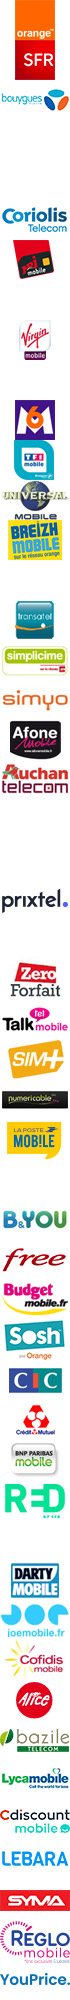 Forfait SFR Tablette Power 15Go